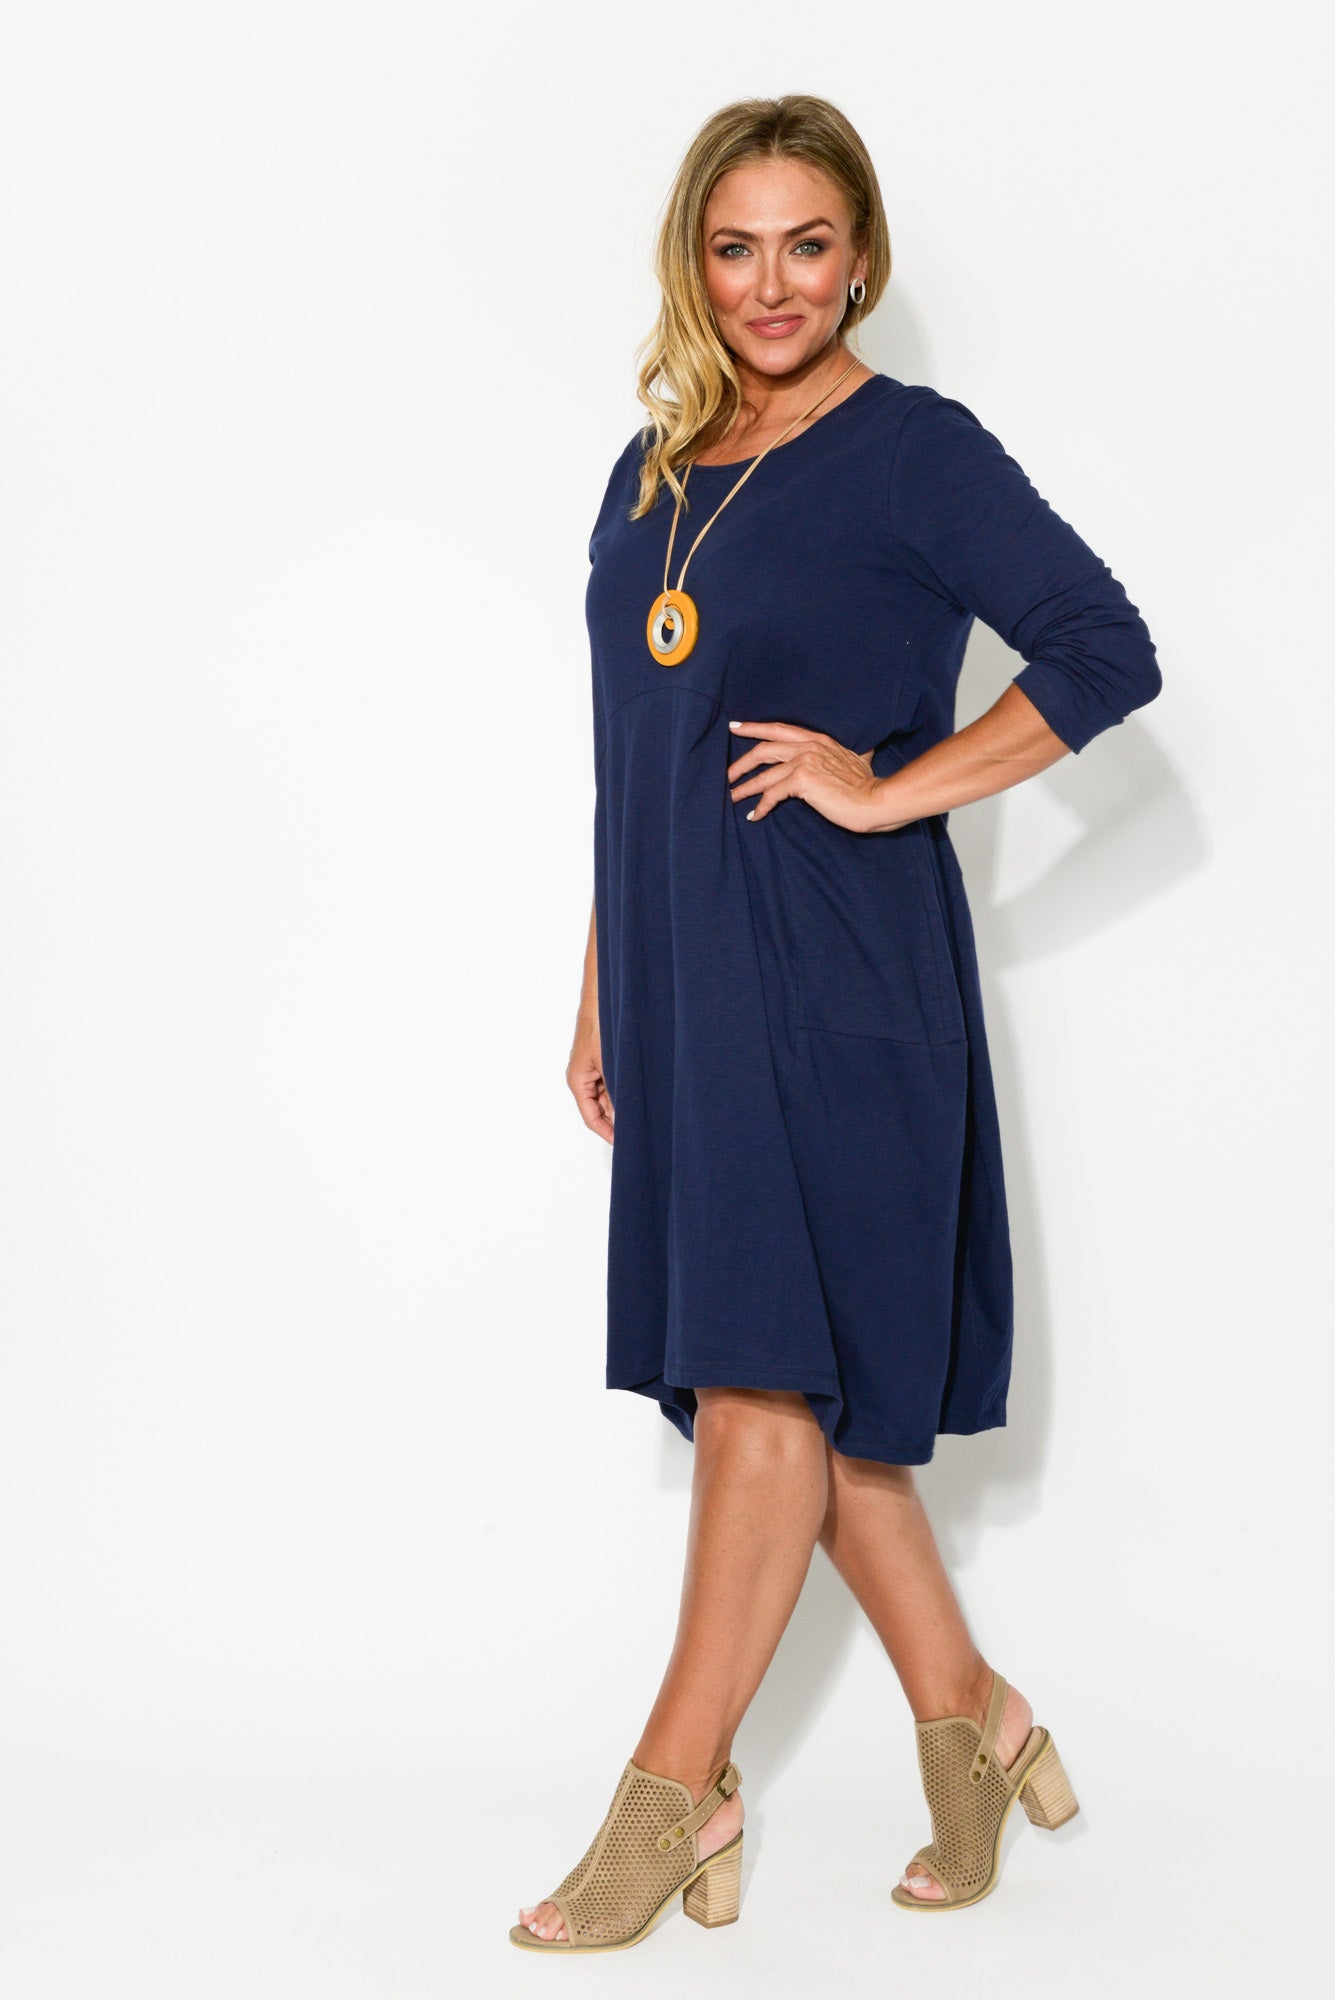 Navy Balloon Cotton Dress - Blue Bungalow